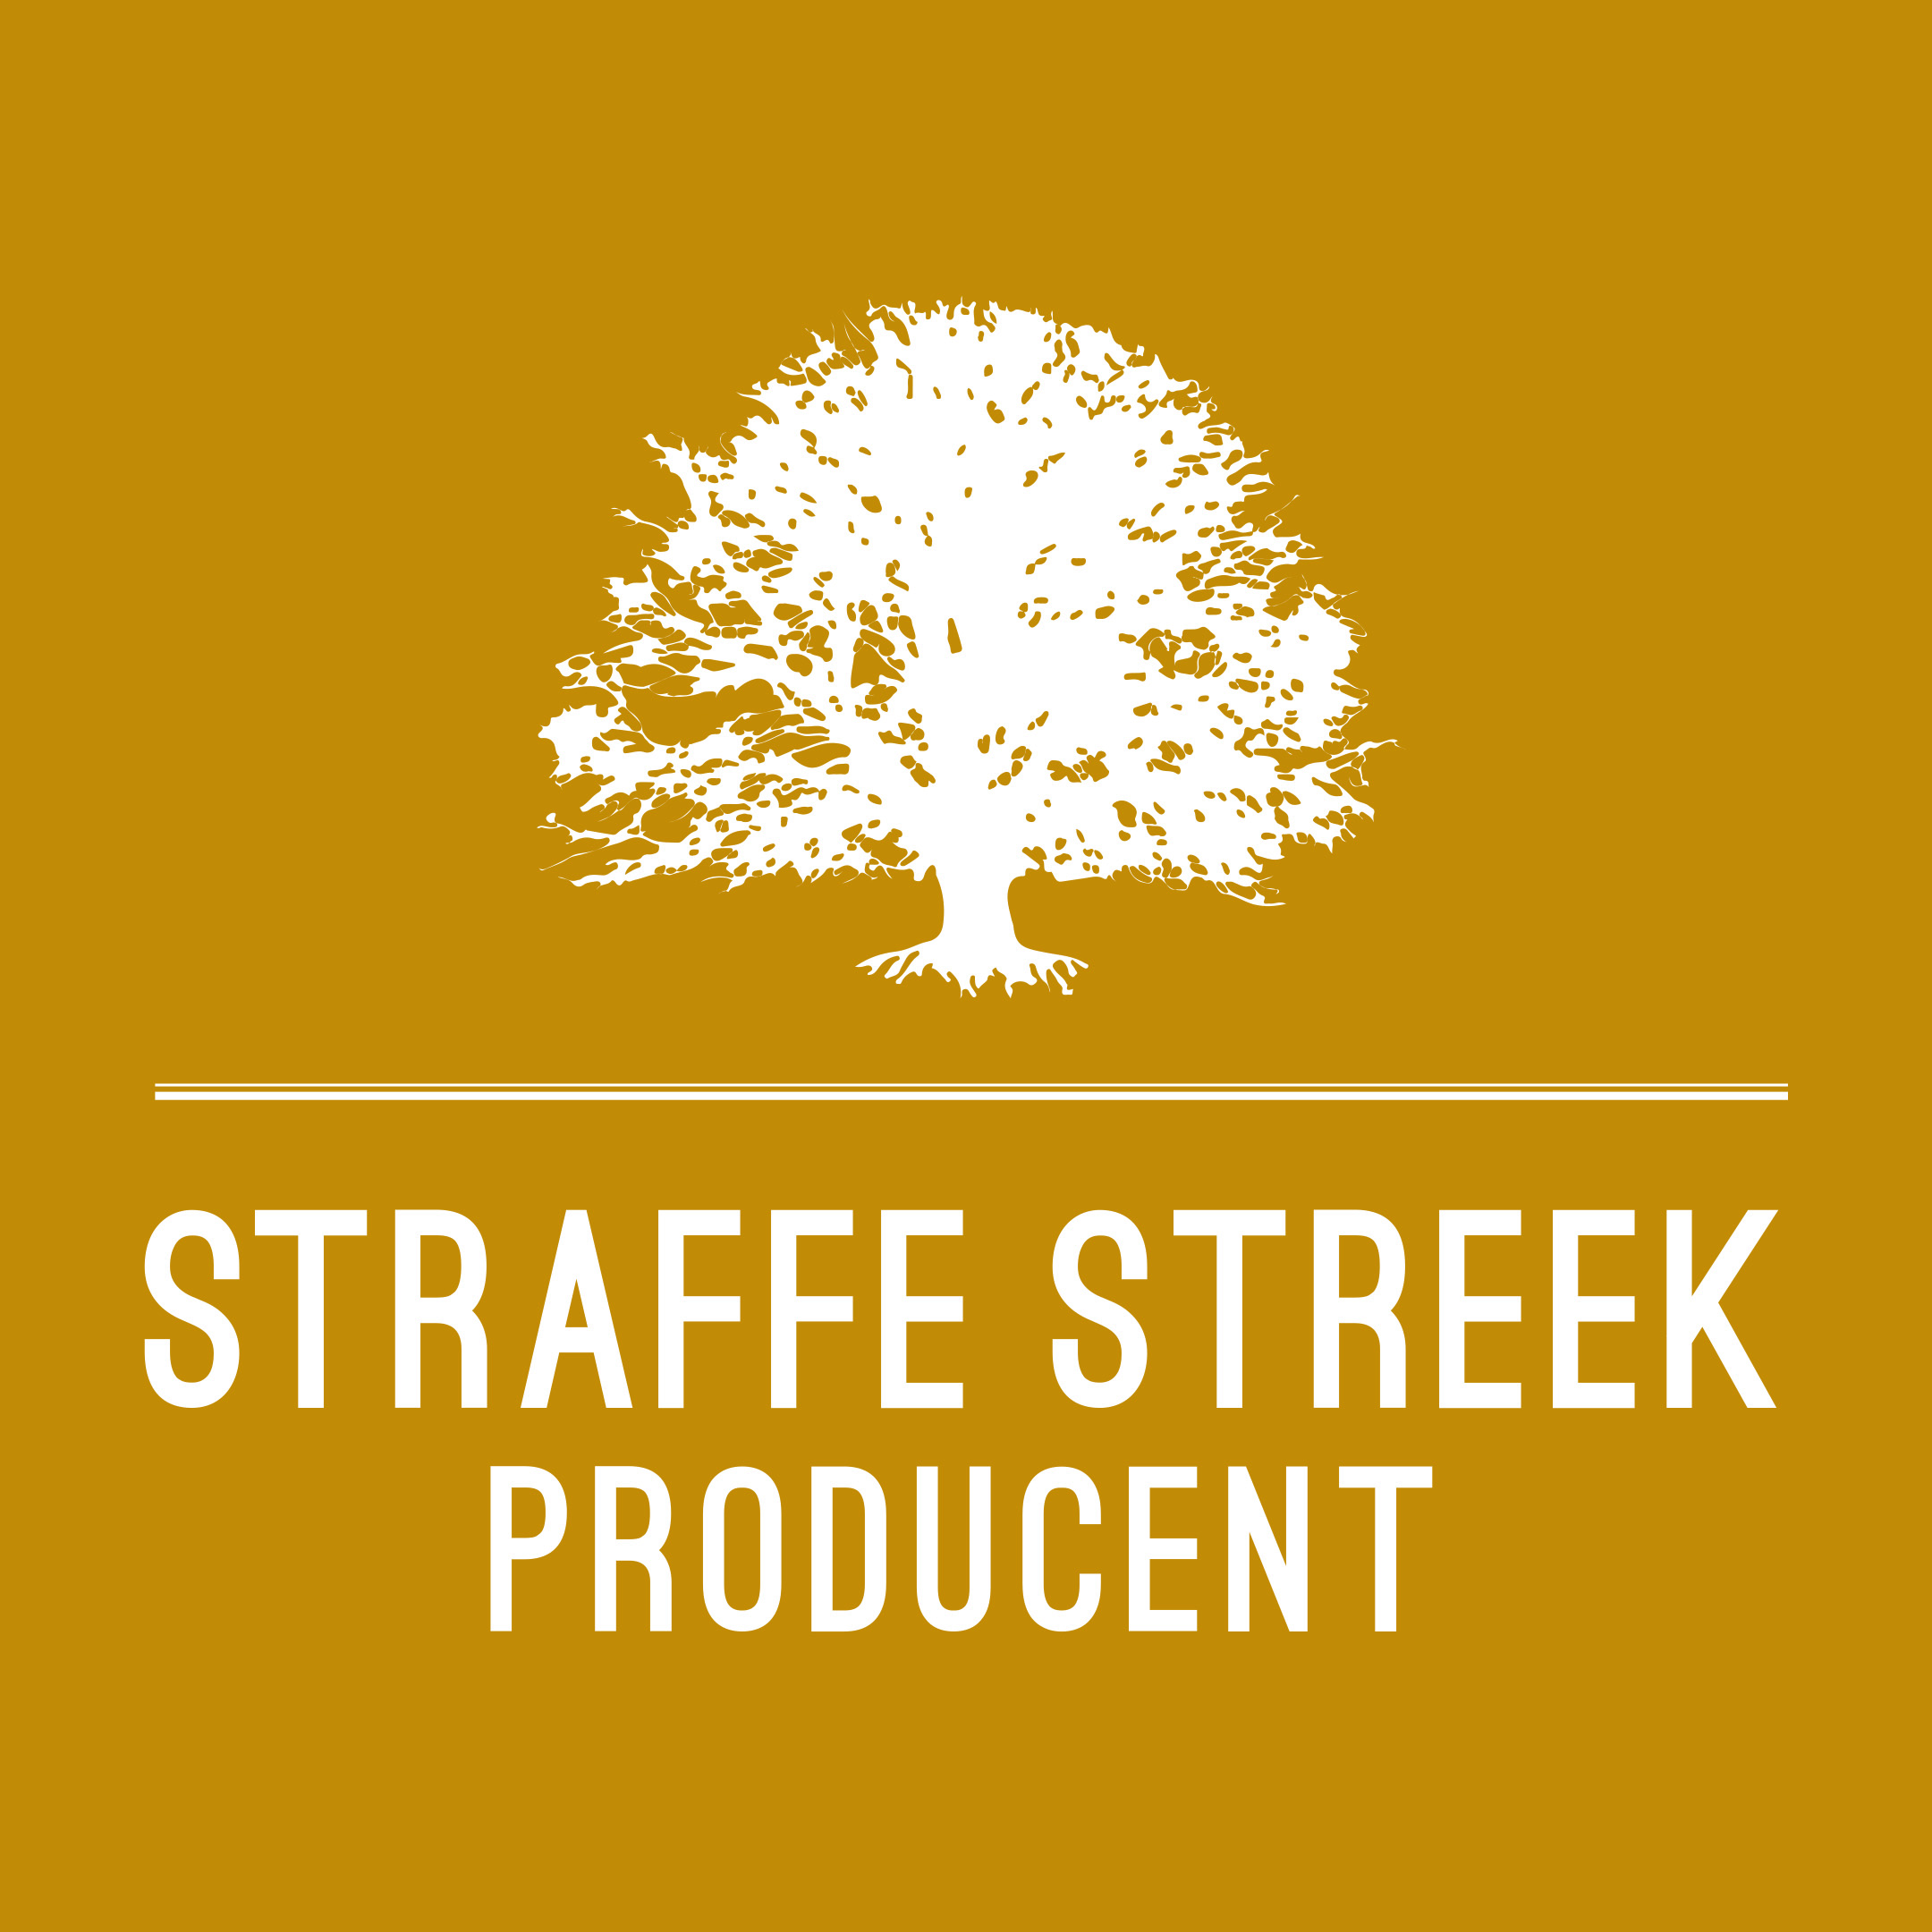 Straffe Streek Producent Wit[235]